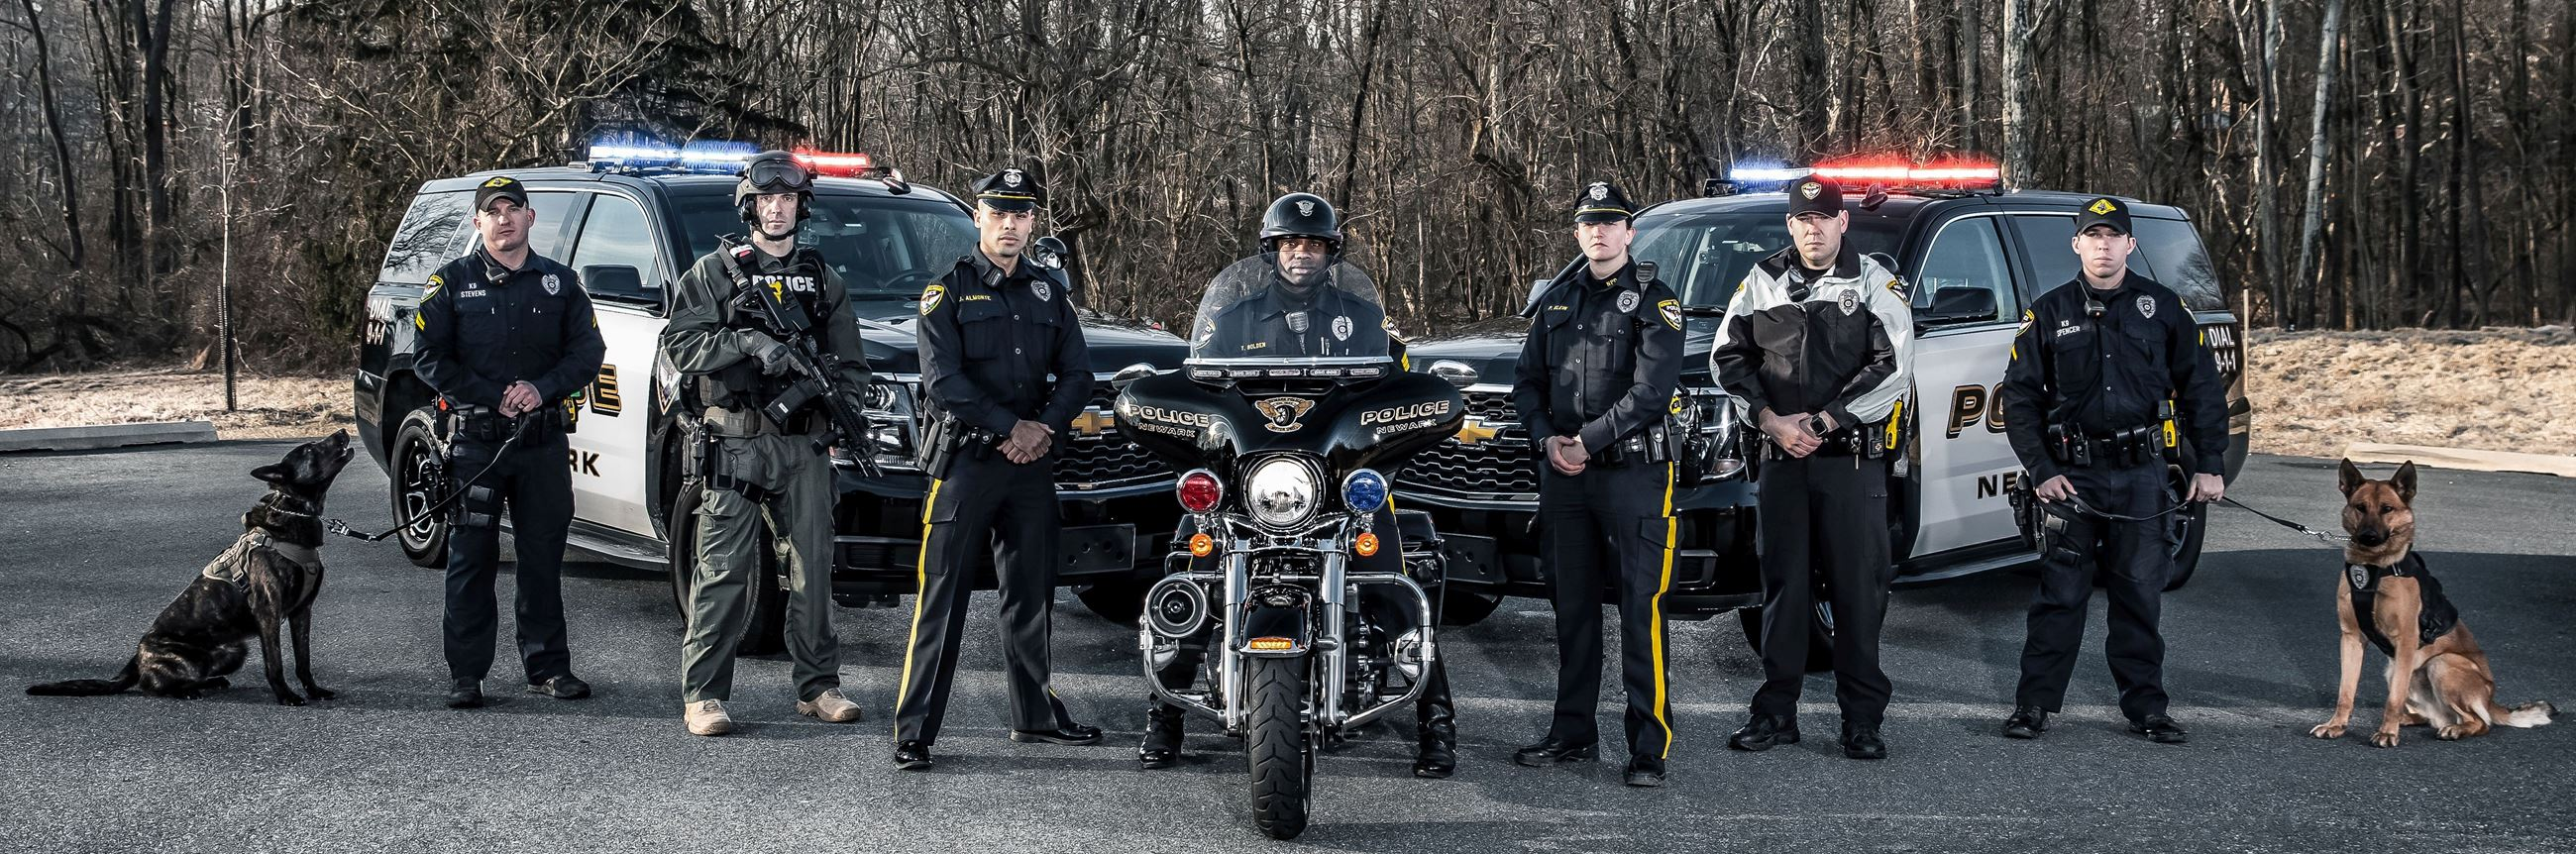 Welcome to the Newark Delaware Police Department | Newark